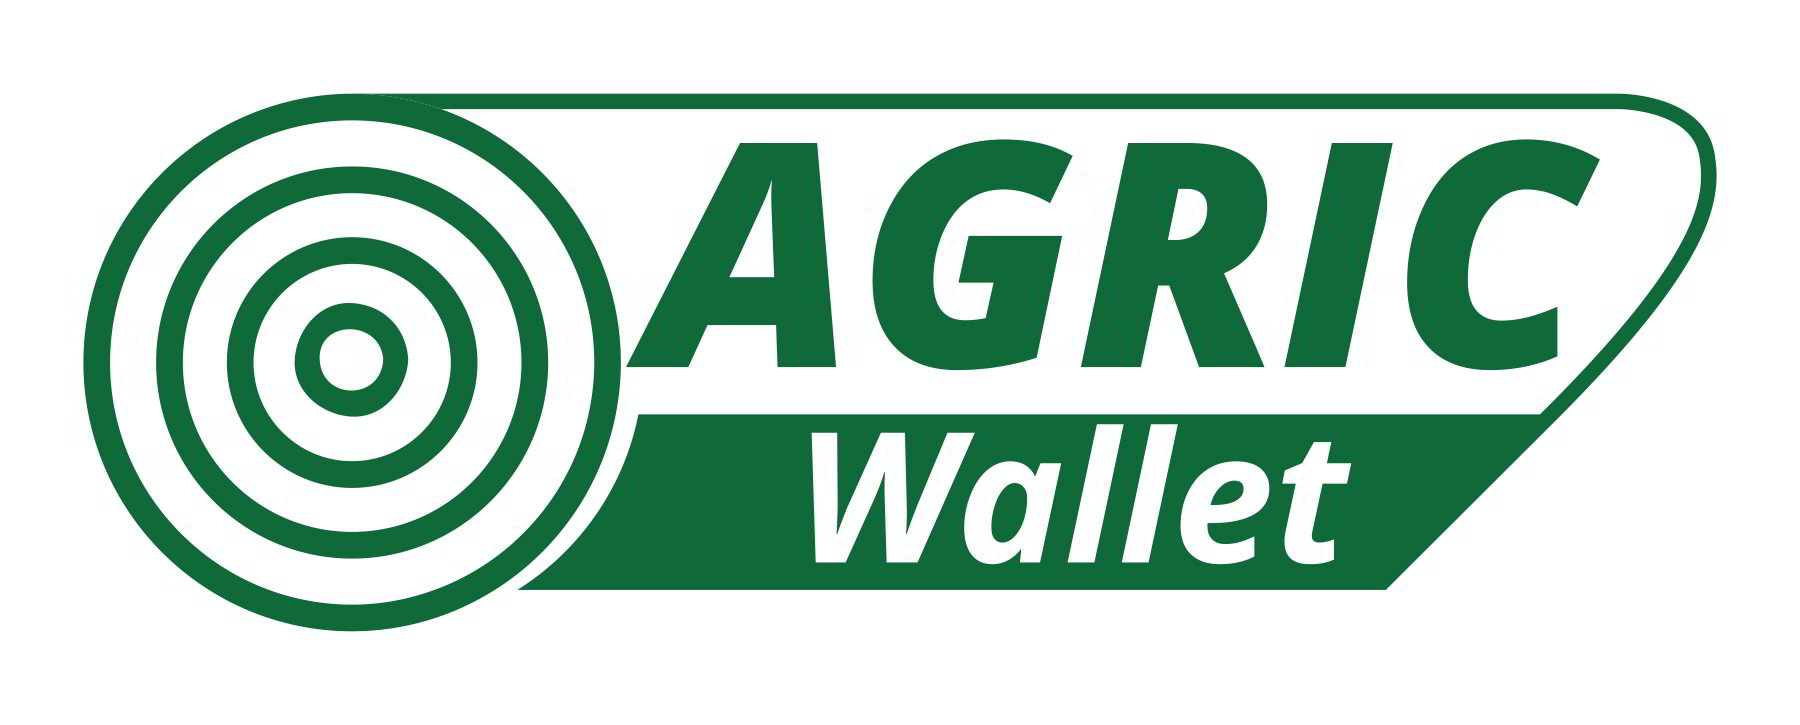 Agric Wallet is a FIN TECH platform focused on FINANCIAL INCLUSION in the Supply Chain through Customer Profiling, Smart Contracts on Distributed Ledgers and Digital Collateral Receipts.